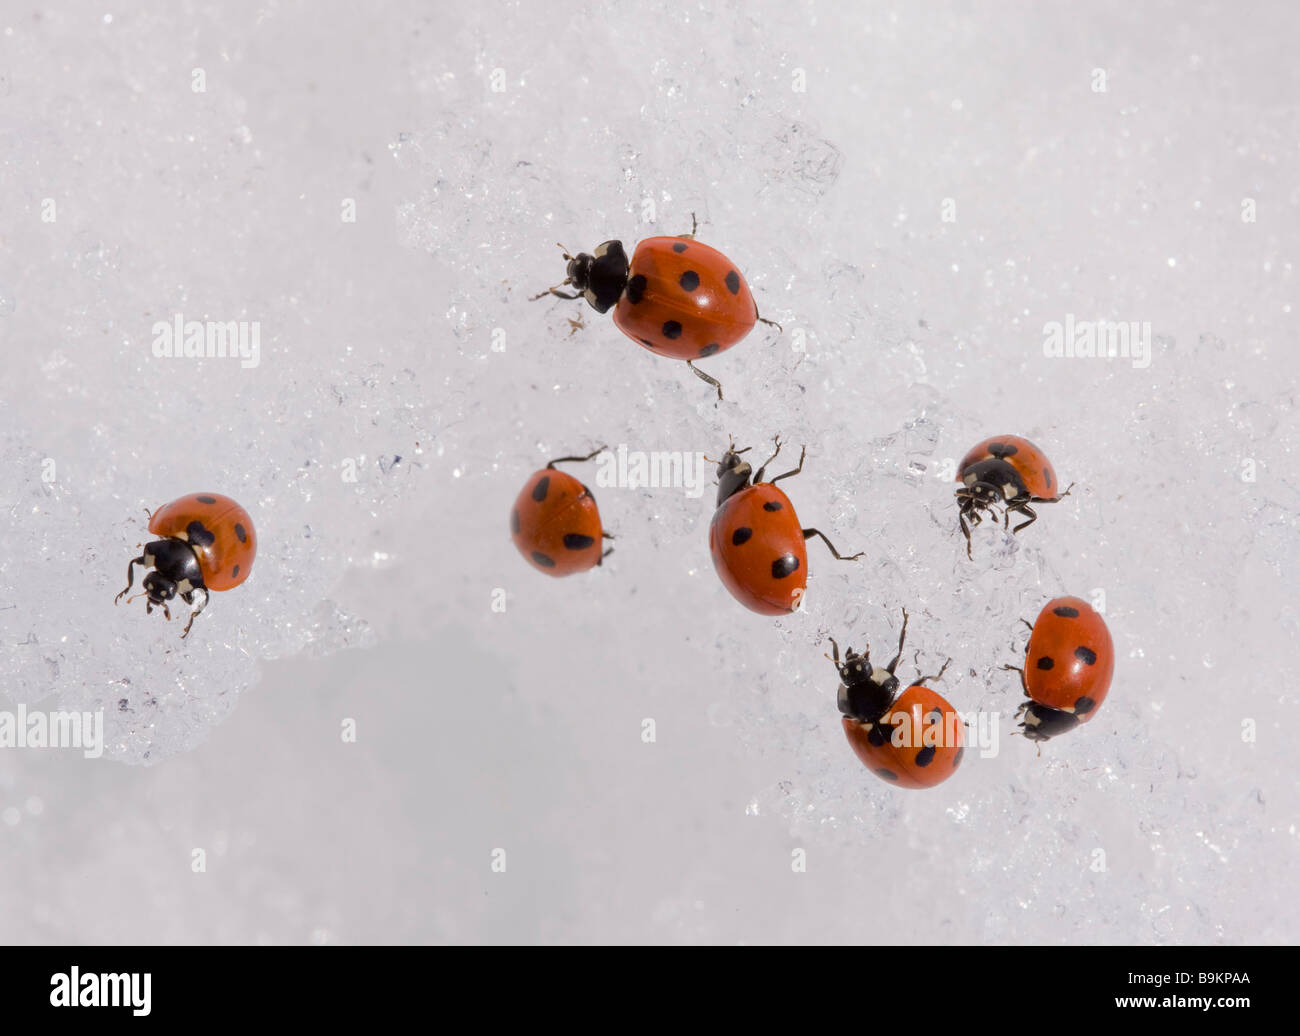 7-spot ladybirds Coccinella septempunctata gathered en masse in the snow at 2000 metres in the Middle Atlas Mountains - Stock Image